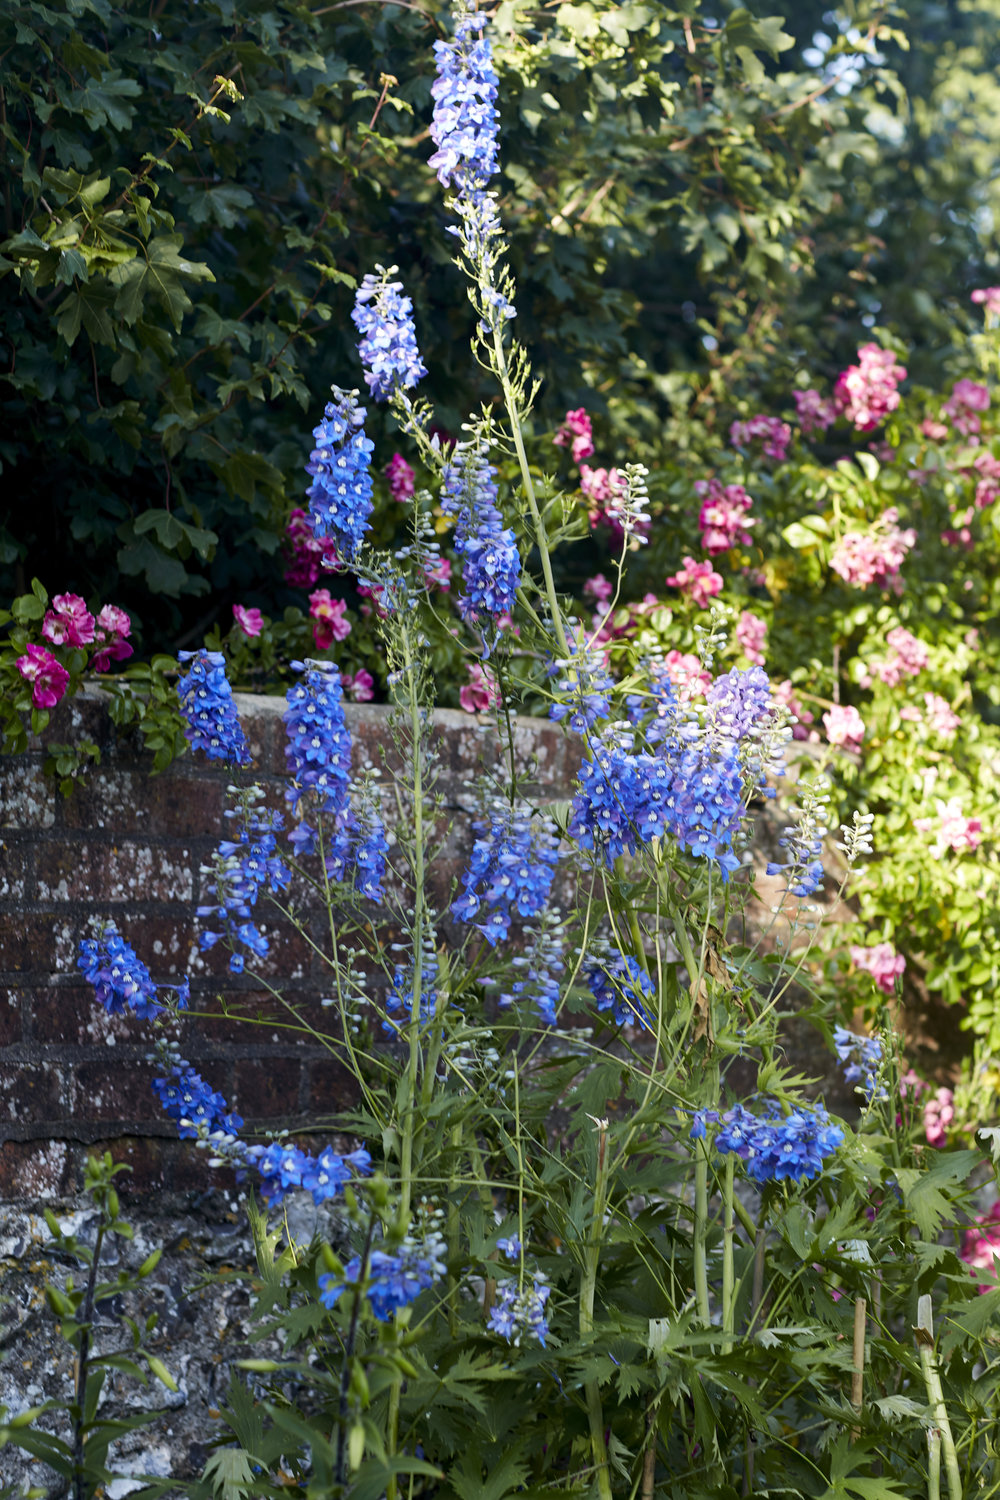 Delphiniums in the Charleston garden. Image by Kristin Perers.